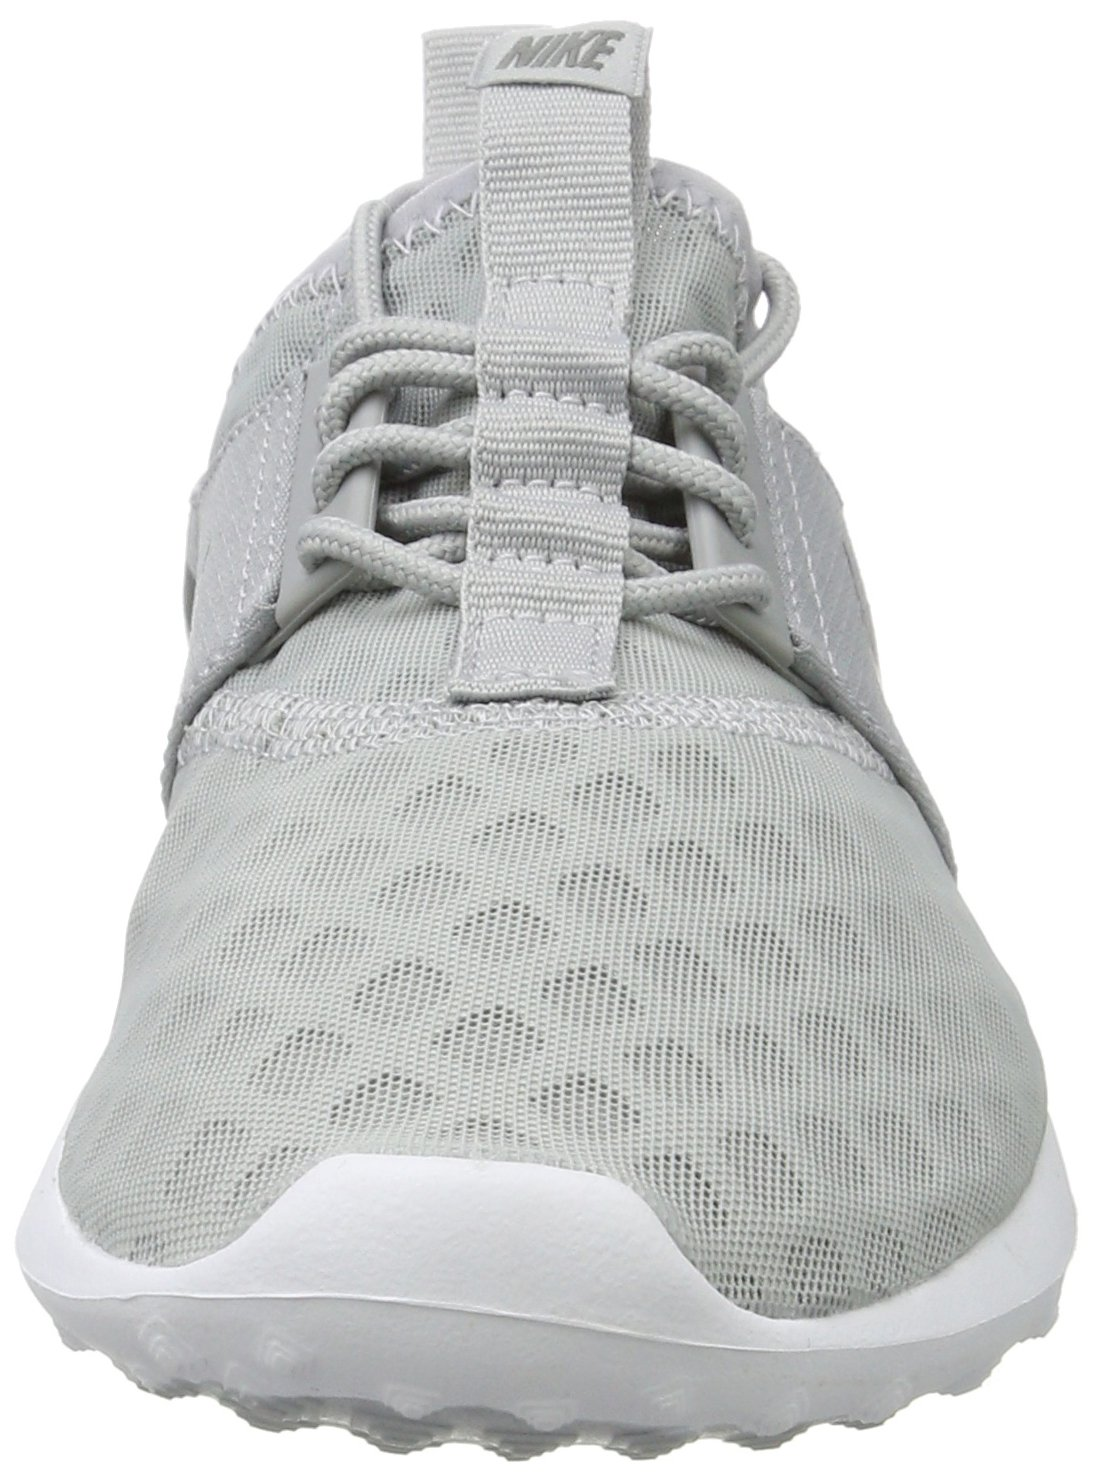 NIKE Women's Juvenate Running Grey/Cool Shoe B01I37M93M 5 B(M) US|Wolf Grey/Cool Running Grey/White 767ba7